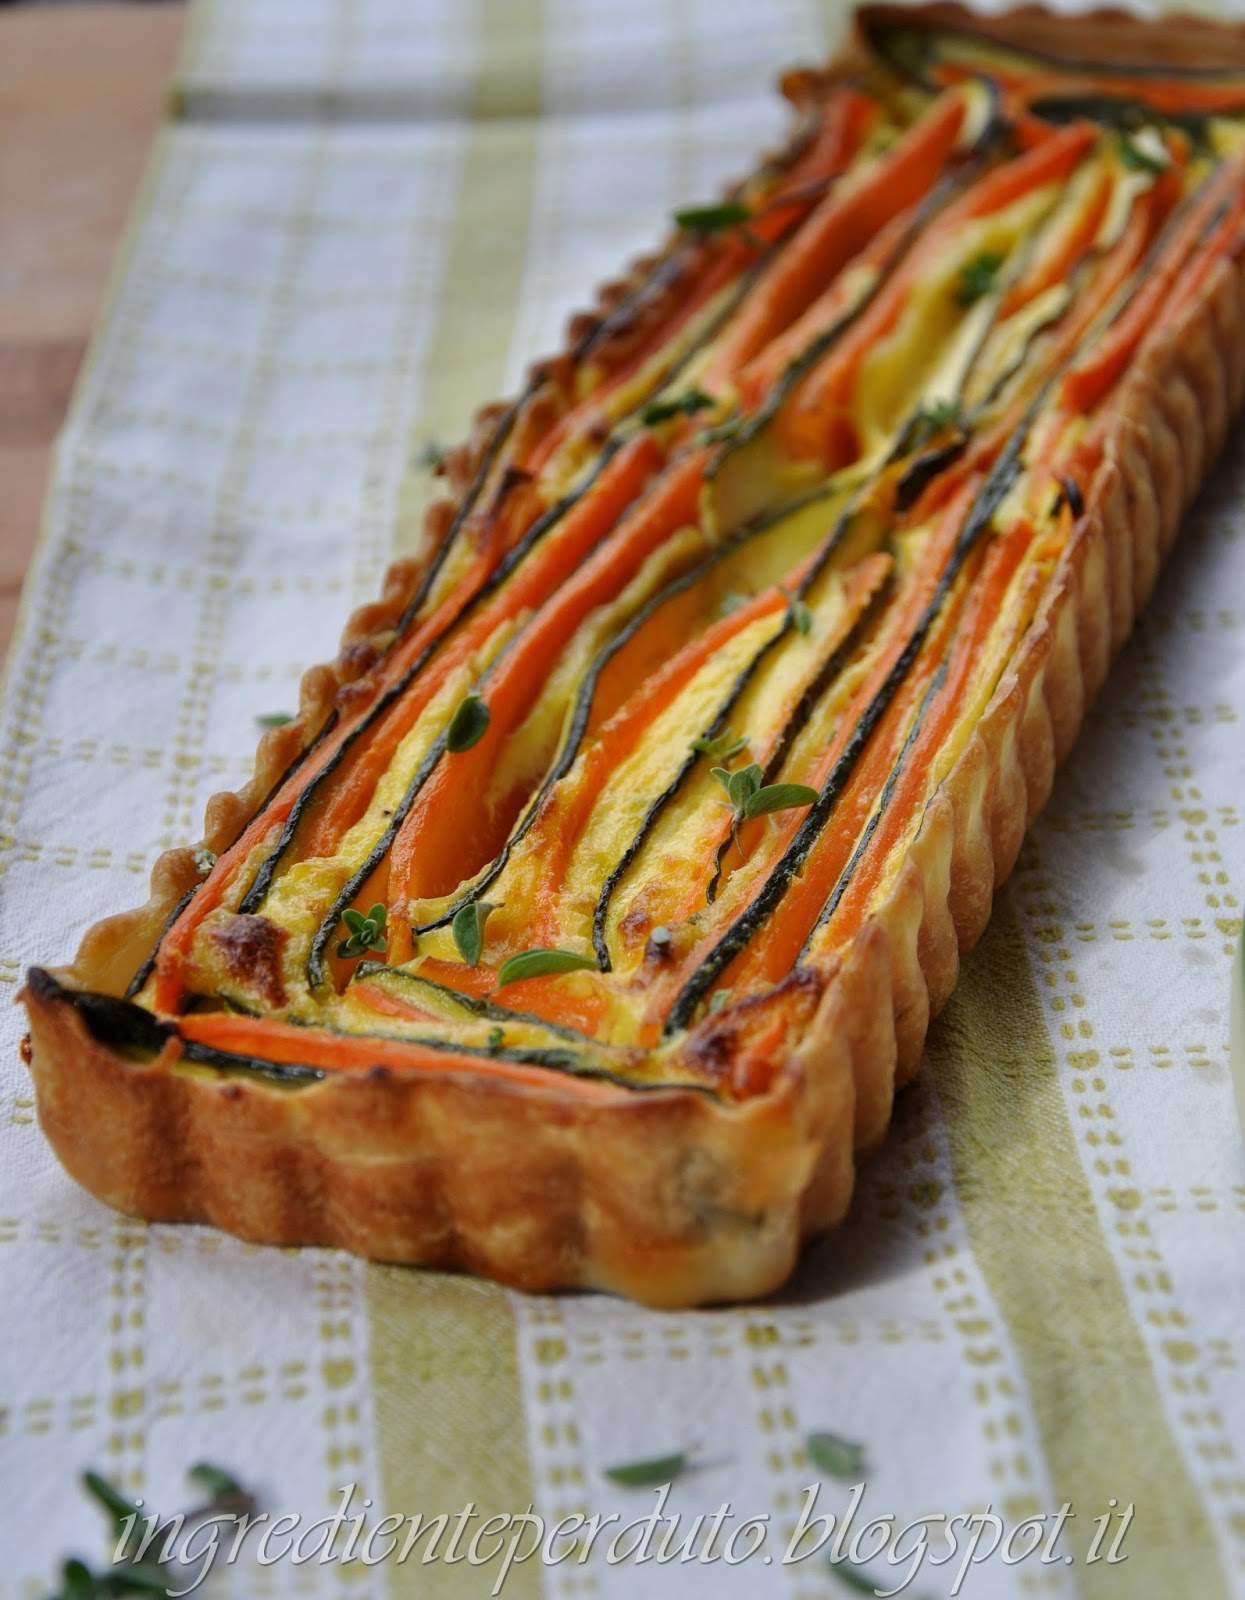 quiche lorainne verdure colorate-ingrediente perduto